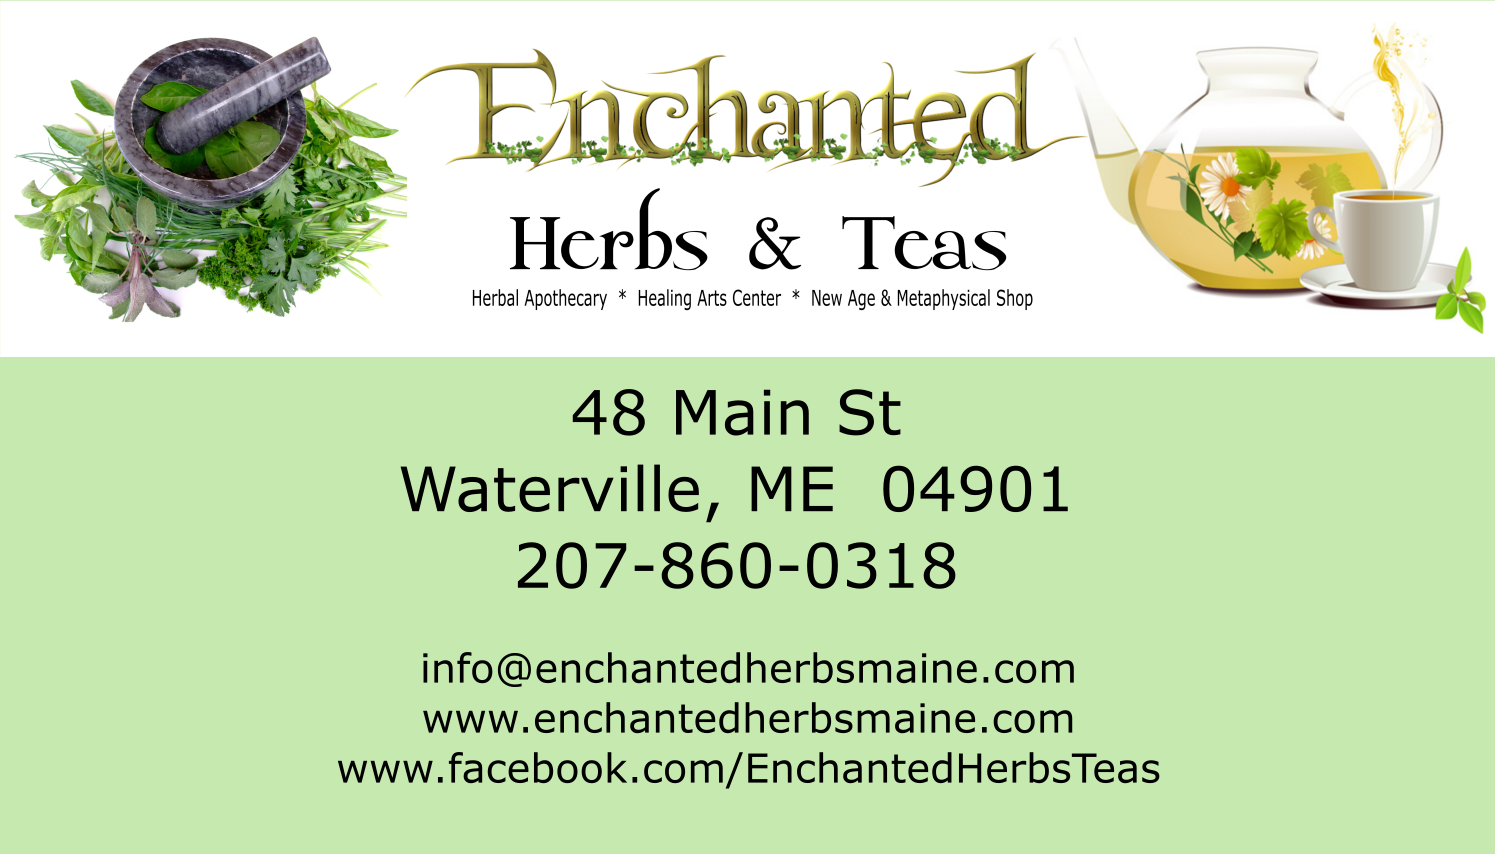 Enchanted Herbs and Teas Waterville, Maine